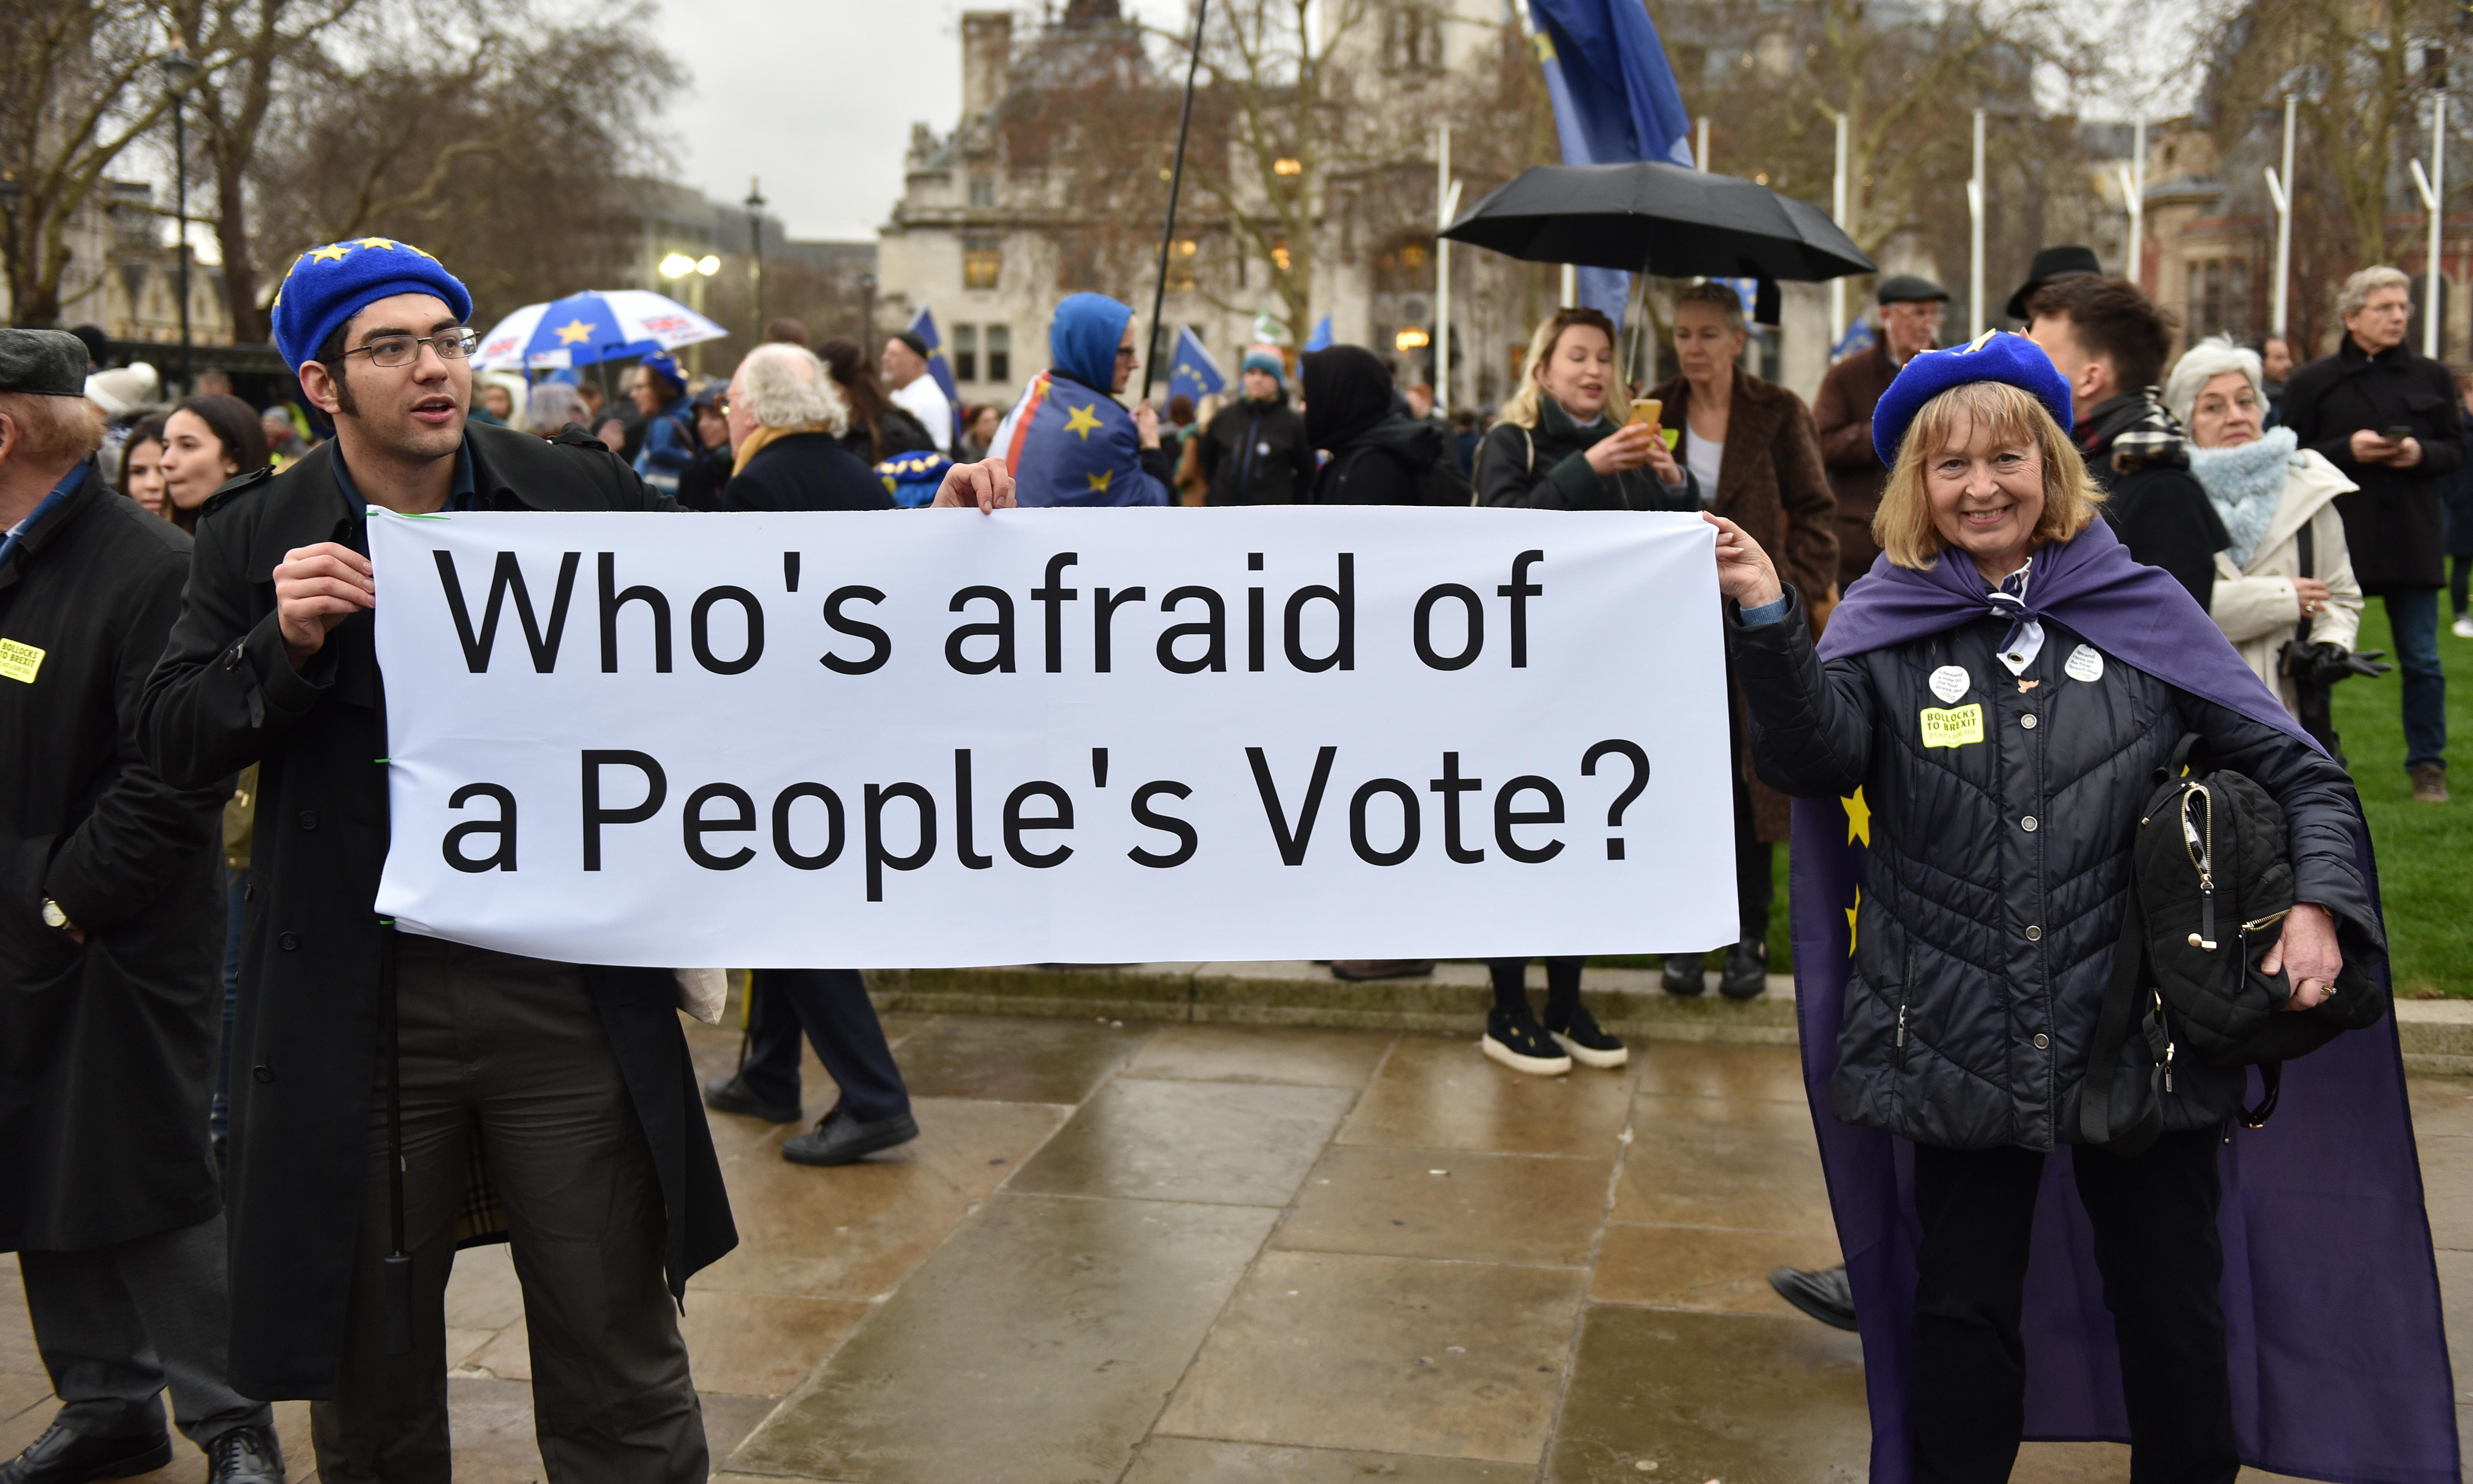 Arrogant remainers want a second vote. That would be a bad day for democracy